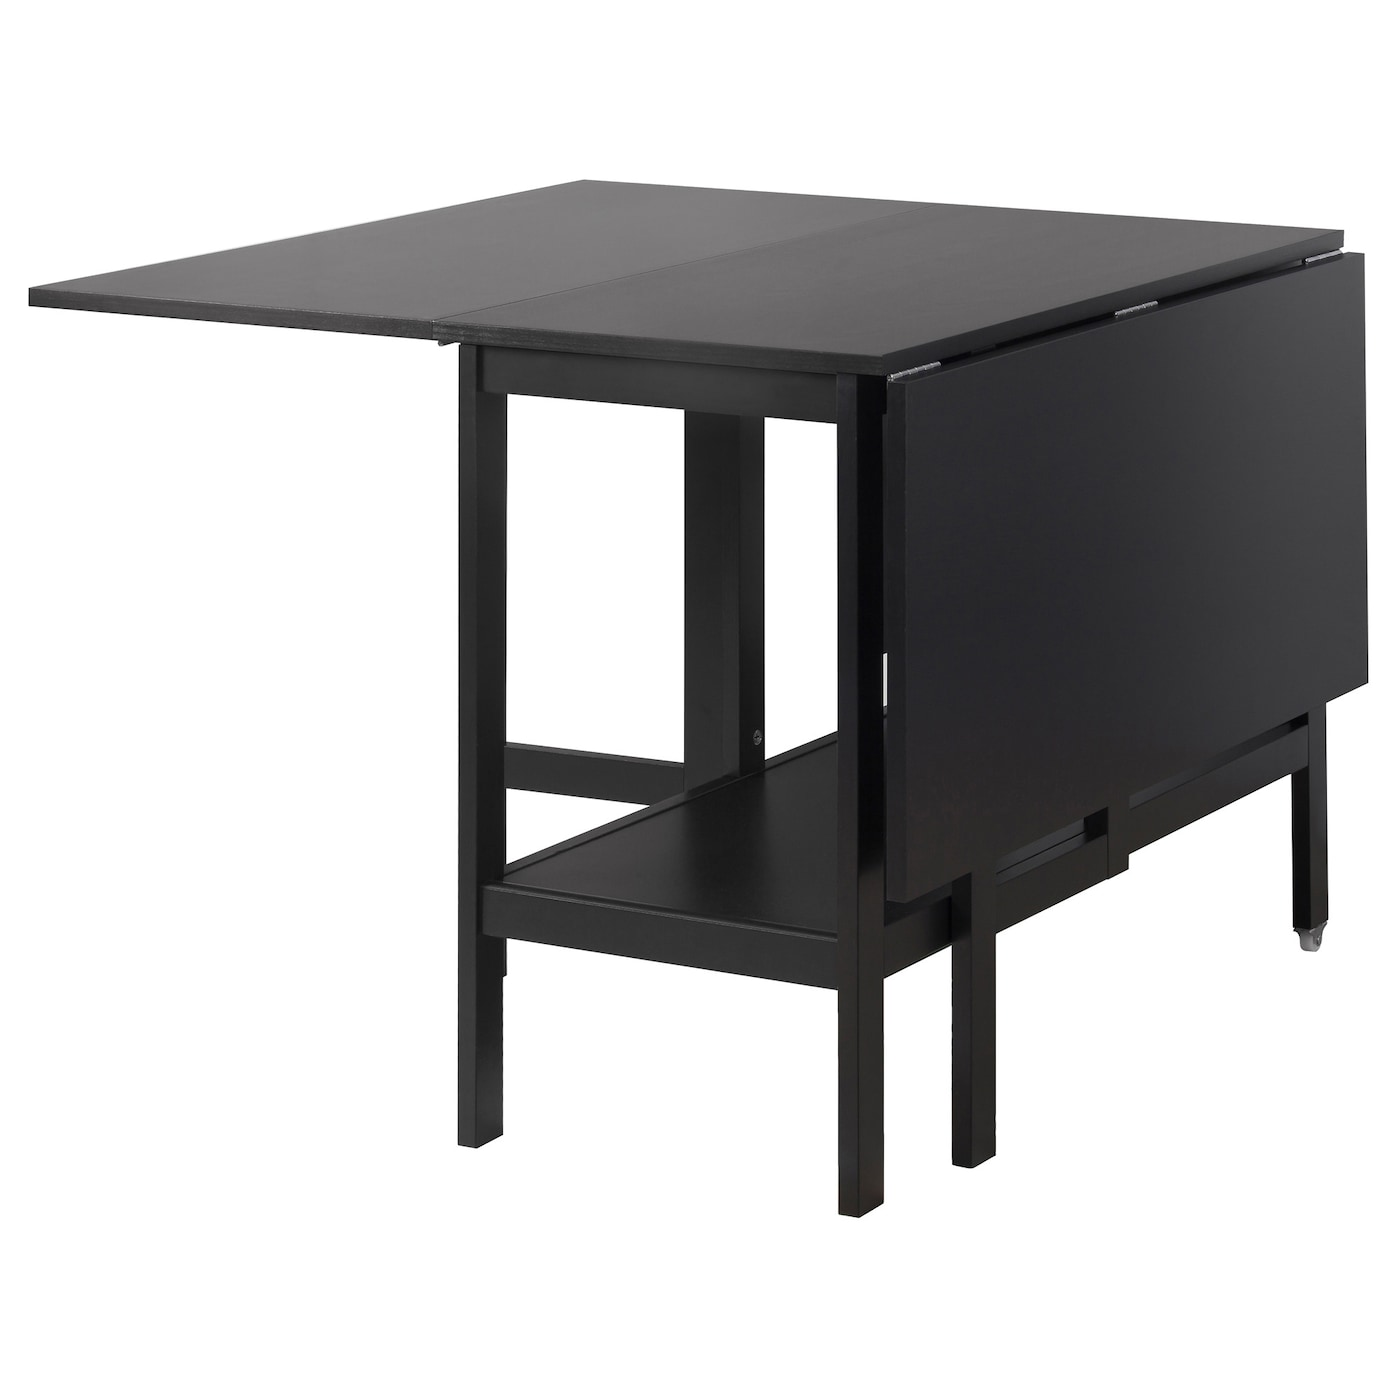 BARSVIKEN Drop leaf table Black 45 90 135x93 cm IKEA